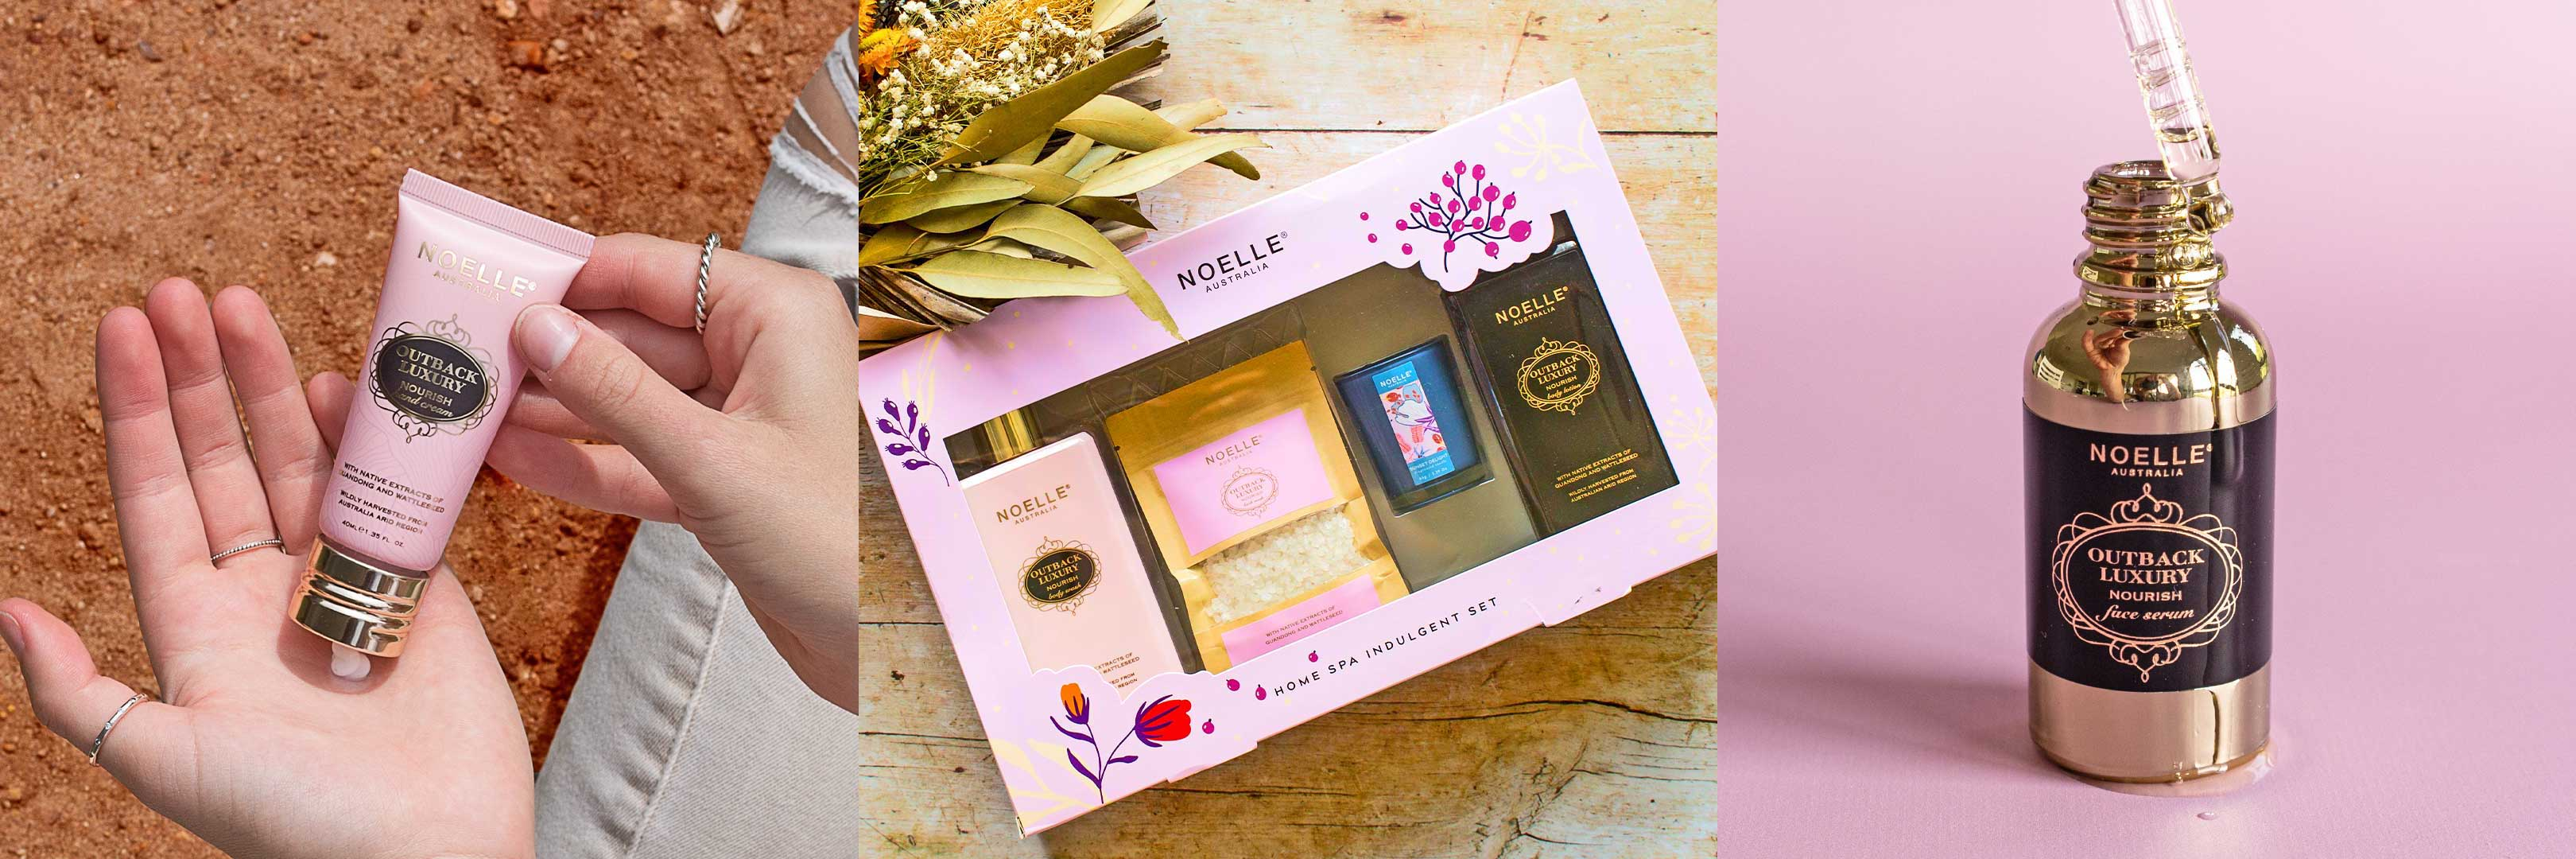 Noelle Australia - Outback A-Beauty Gifts with a Christmas Story to tell